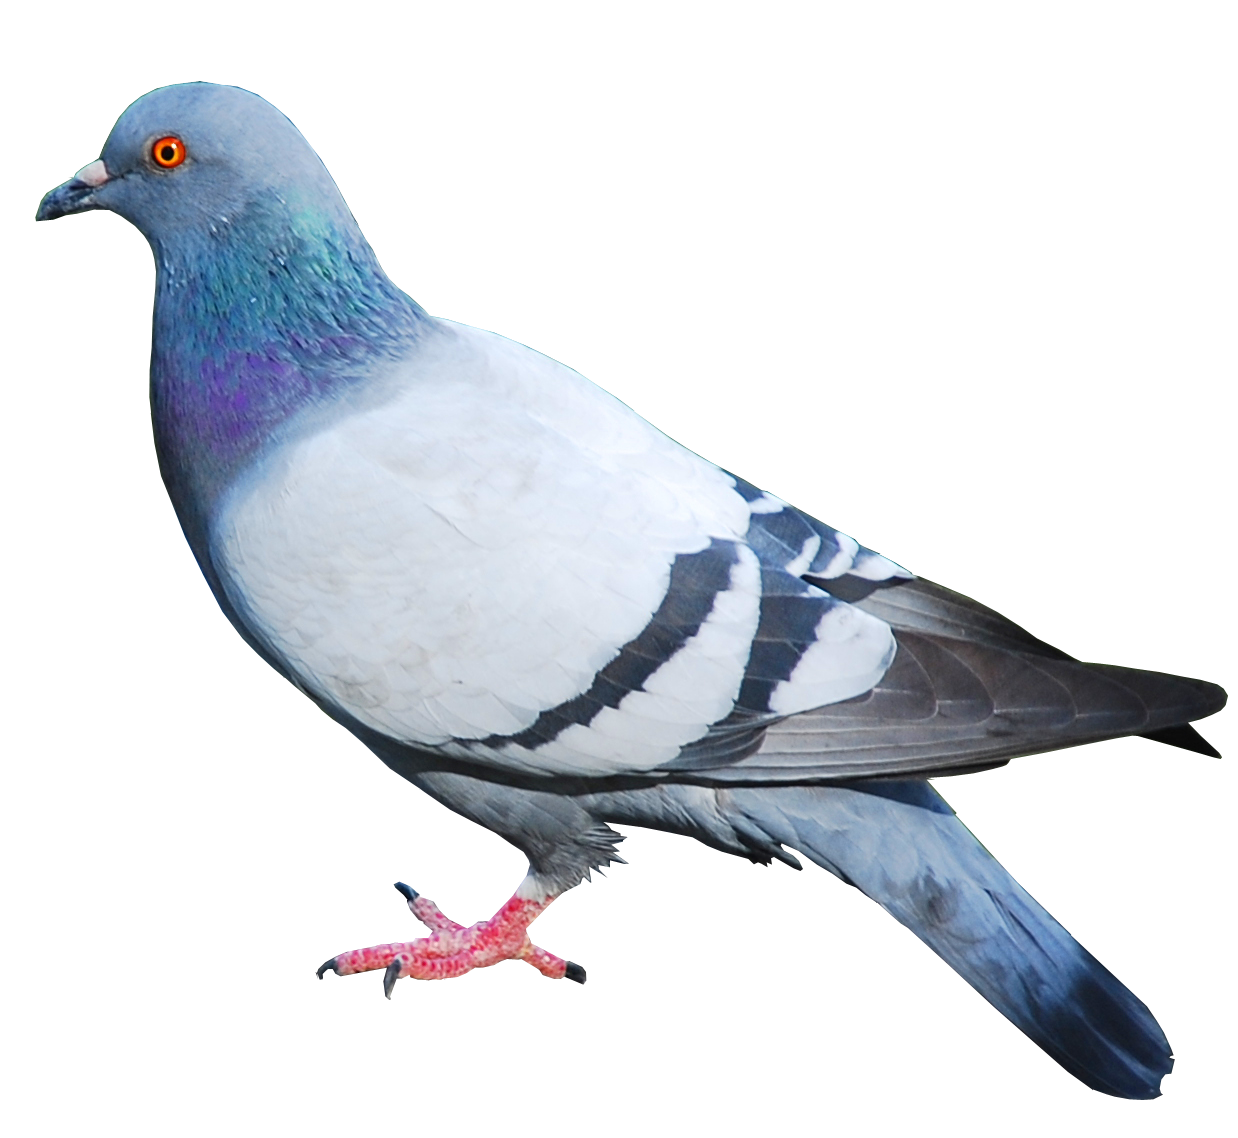 Collection of Pigeon Images on HDWallpapers.